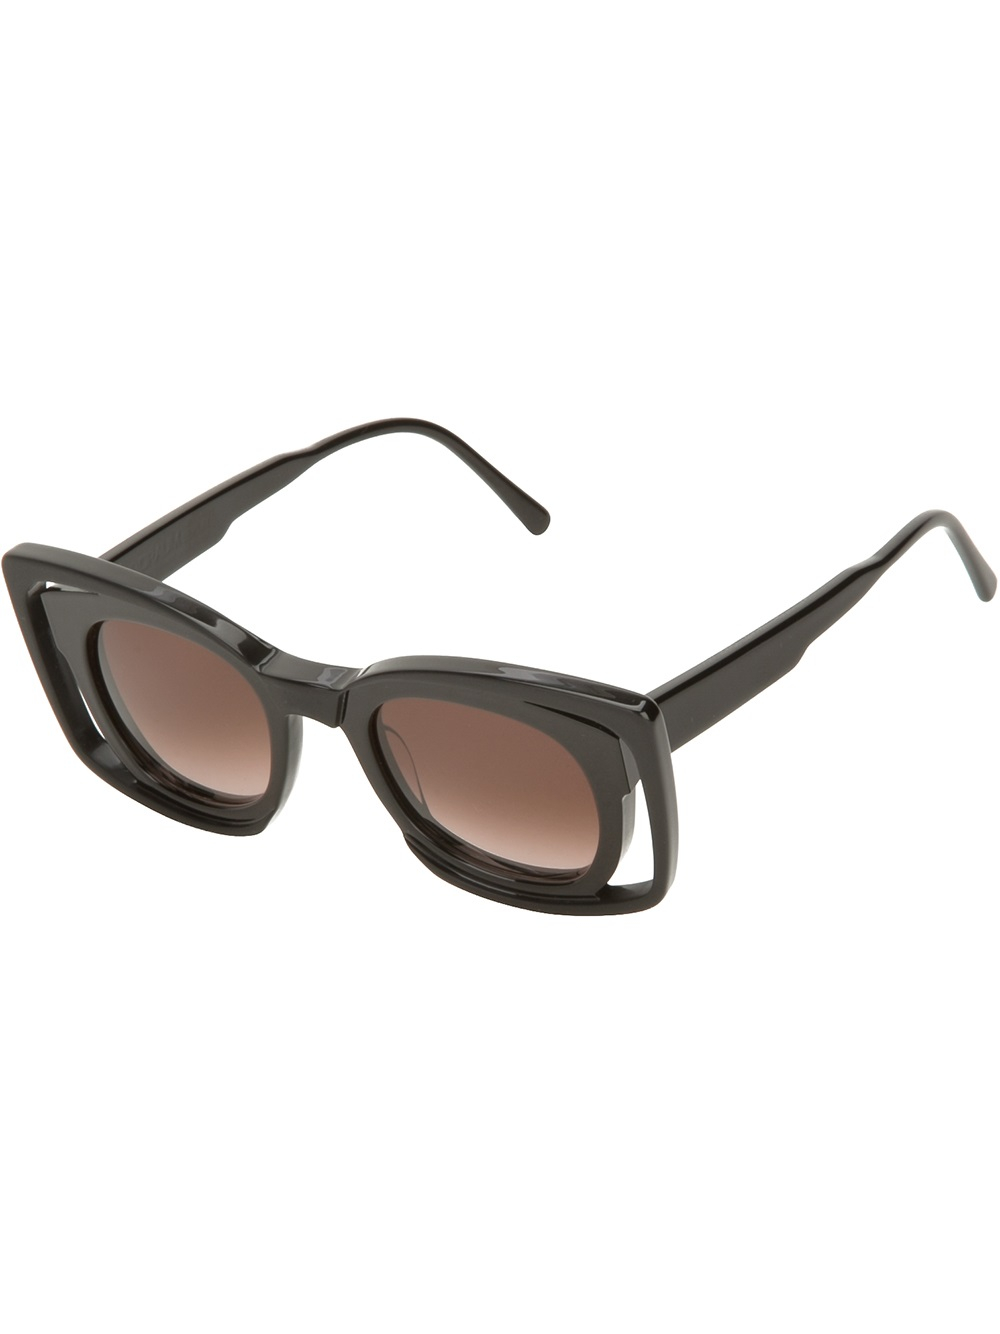 What's more glamorous than a pair of oversized sunglasses? On your face, they give you a mysterious, movie-star look. Black or tortoise frames are classics and look good on almost everyone. Vintage 's Spectacle Steampunk Horned Rim Sunglasses $ USD. Designer Inspired Round Circle Half Tinted Lens Sunglasses